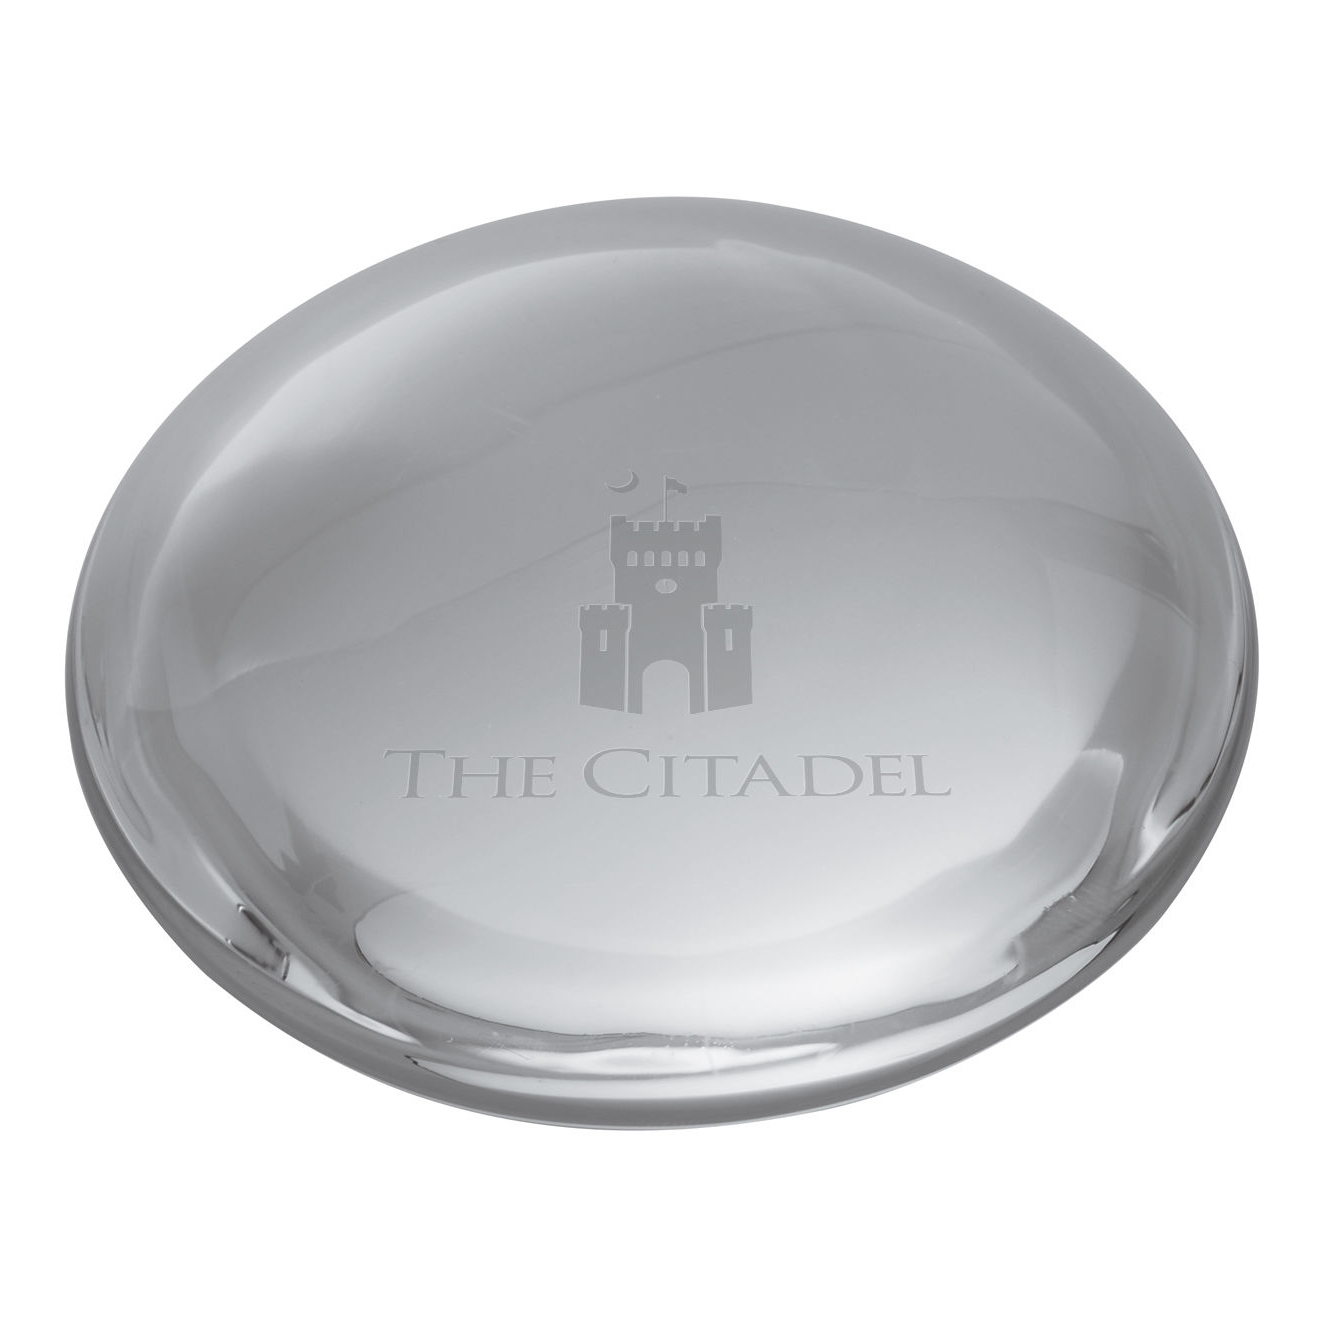 Citadel Glass Dome Paperweight by Simon Pearce - Image 2